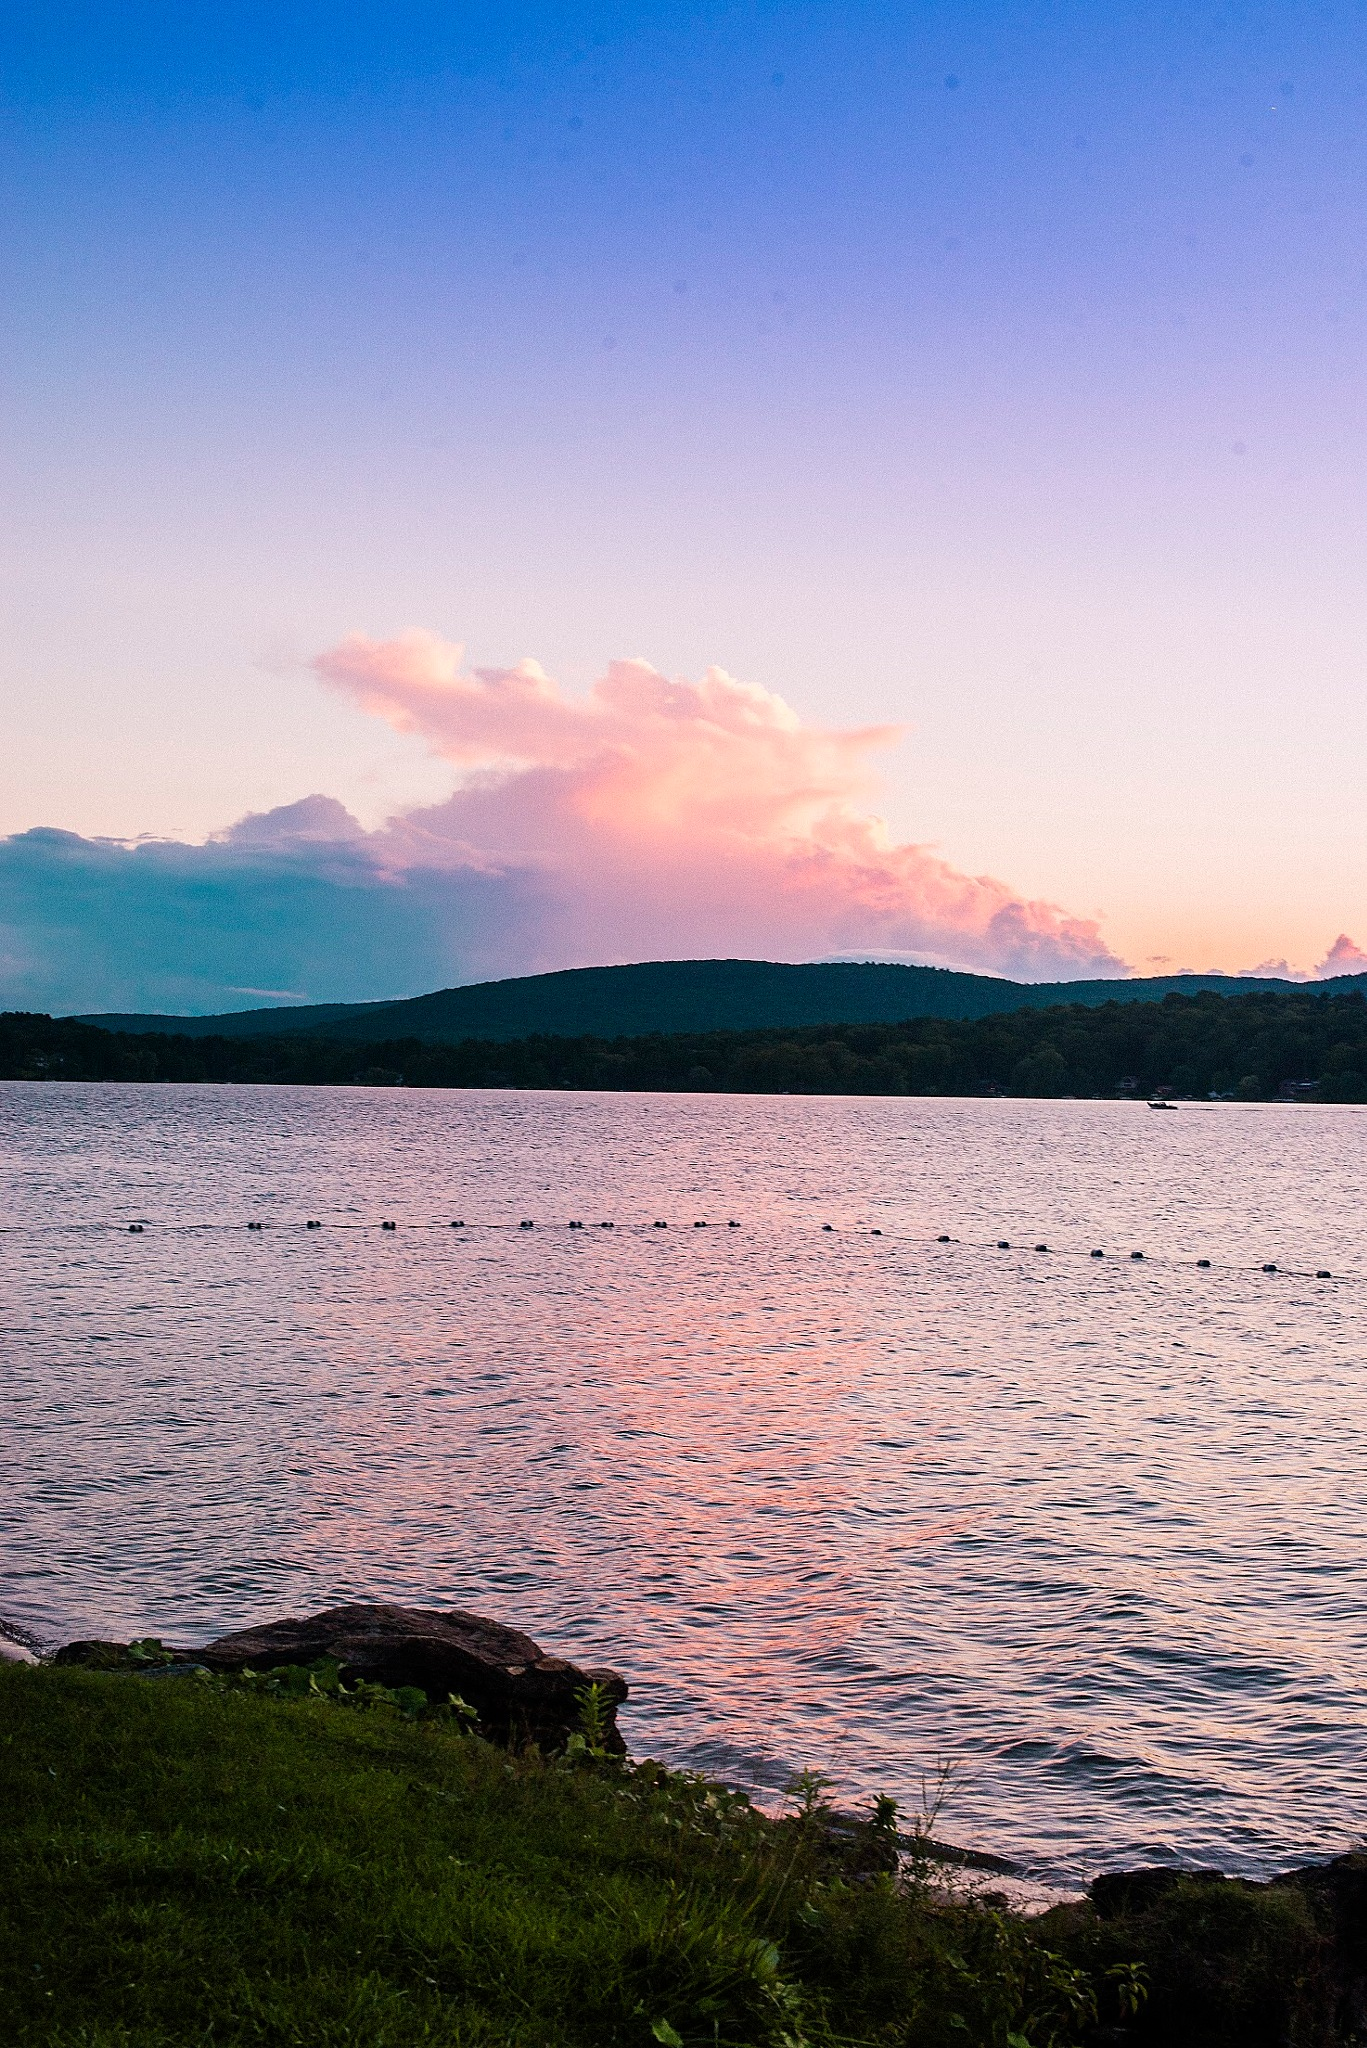 Sunset in The Berkshires by Taylor McIntyre